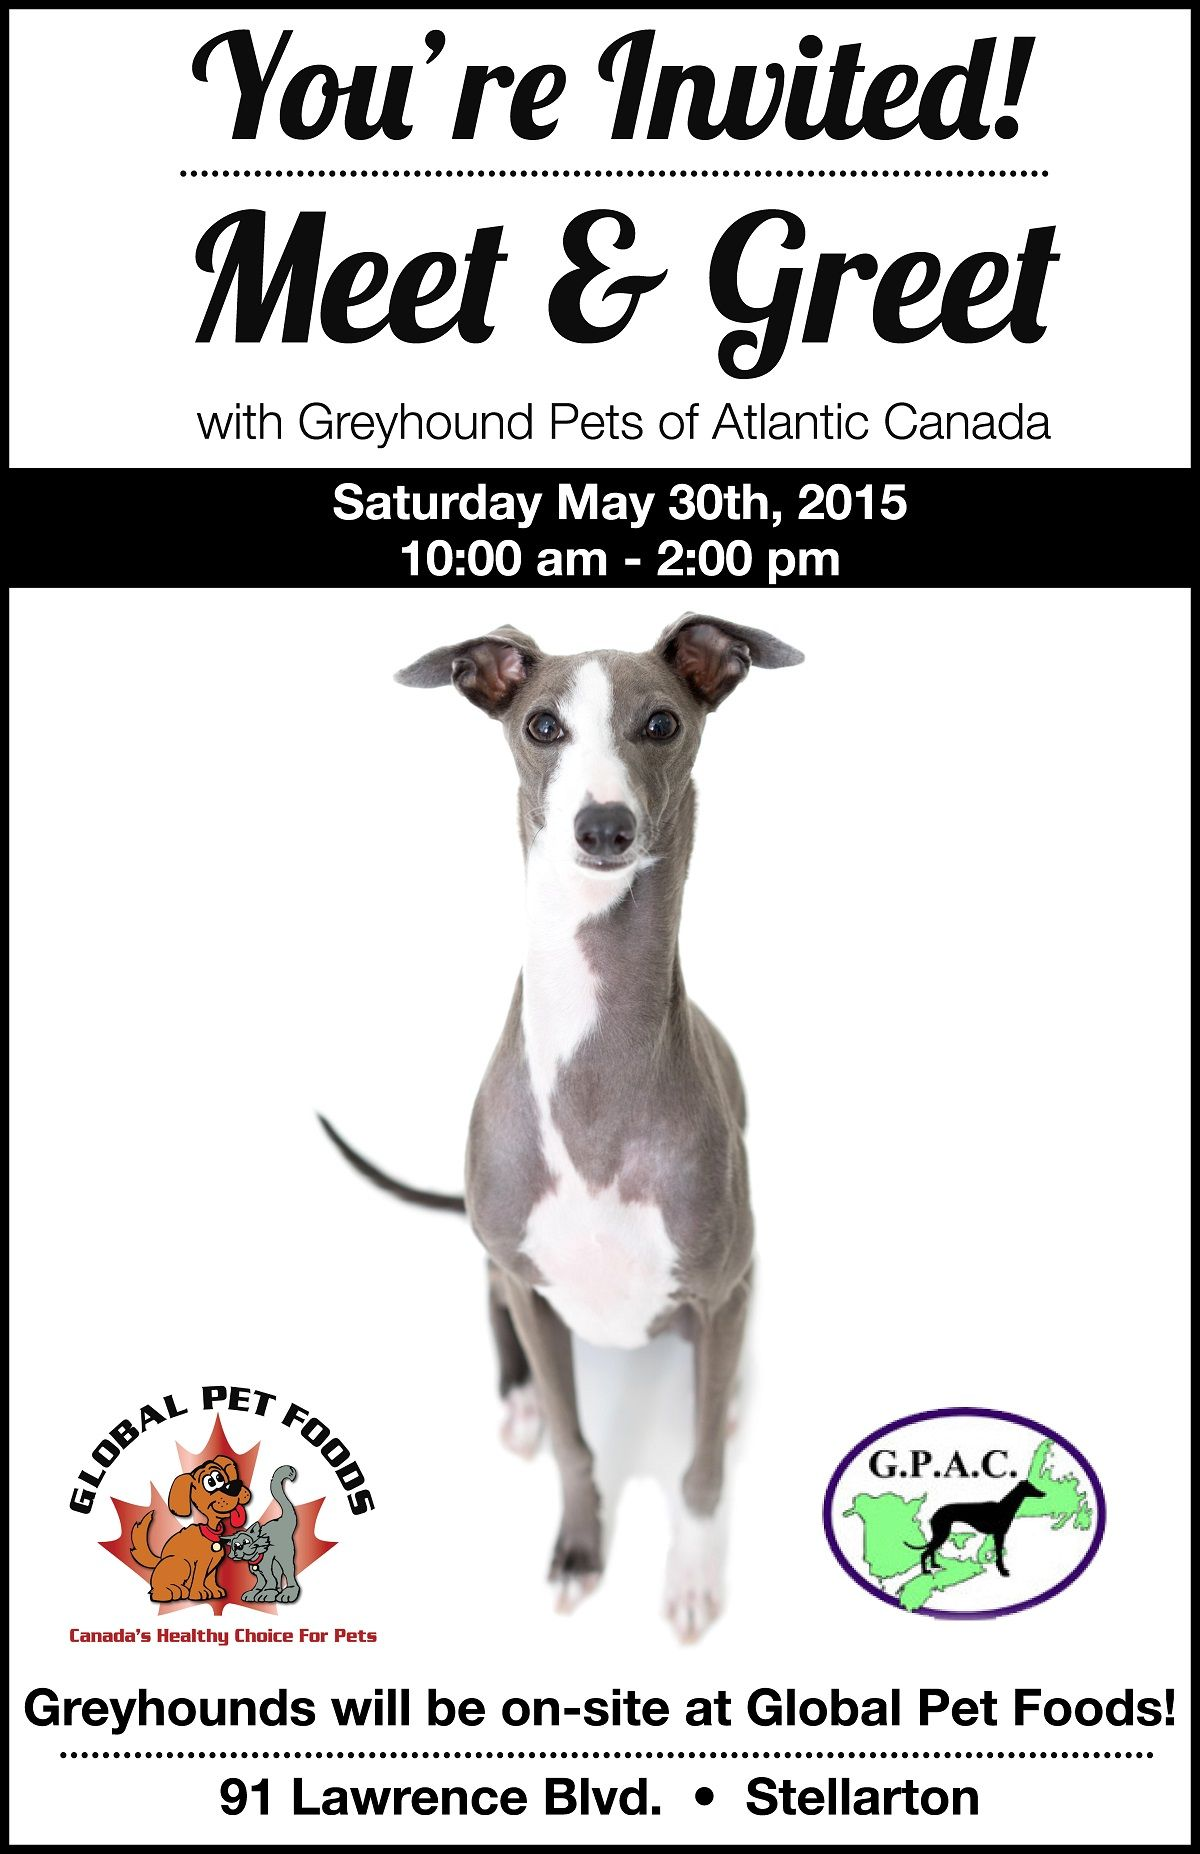 Meet & Greet with Greyhound Pets of Atlantic Canada at the